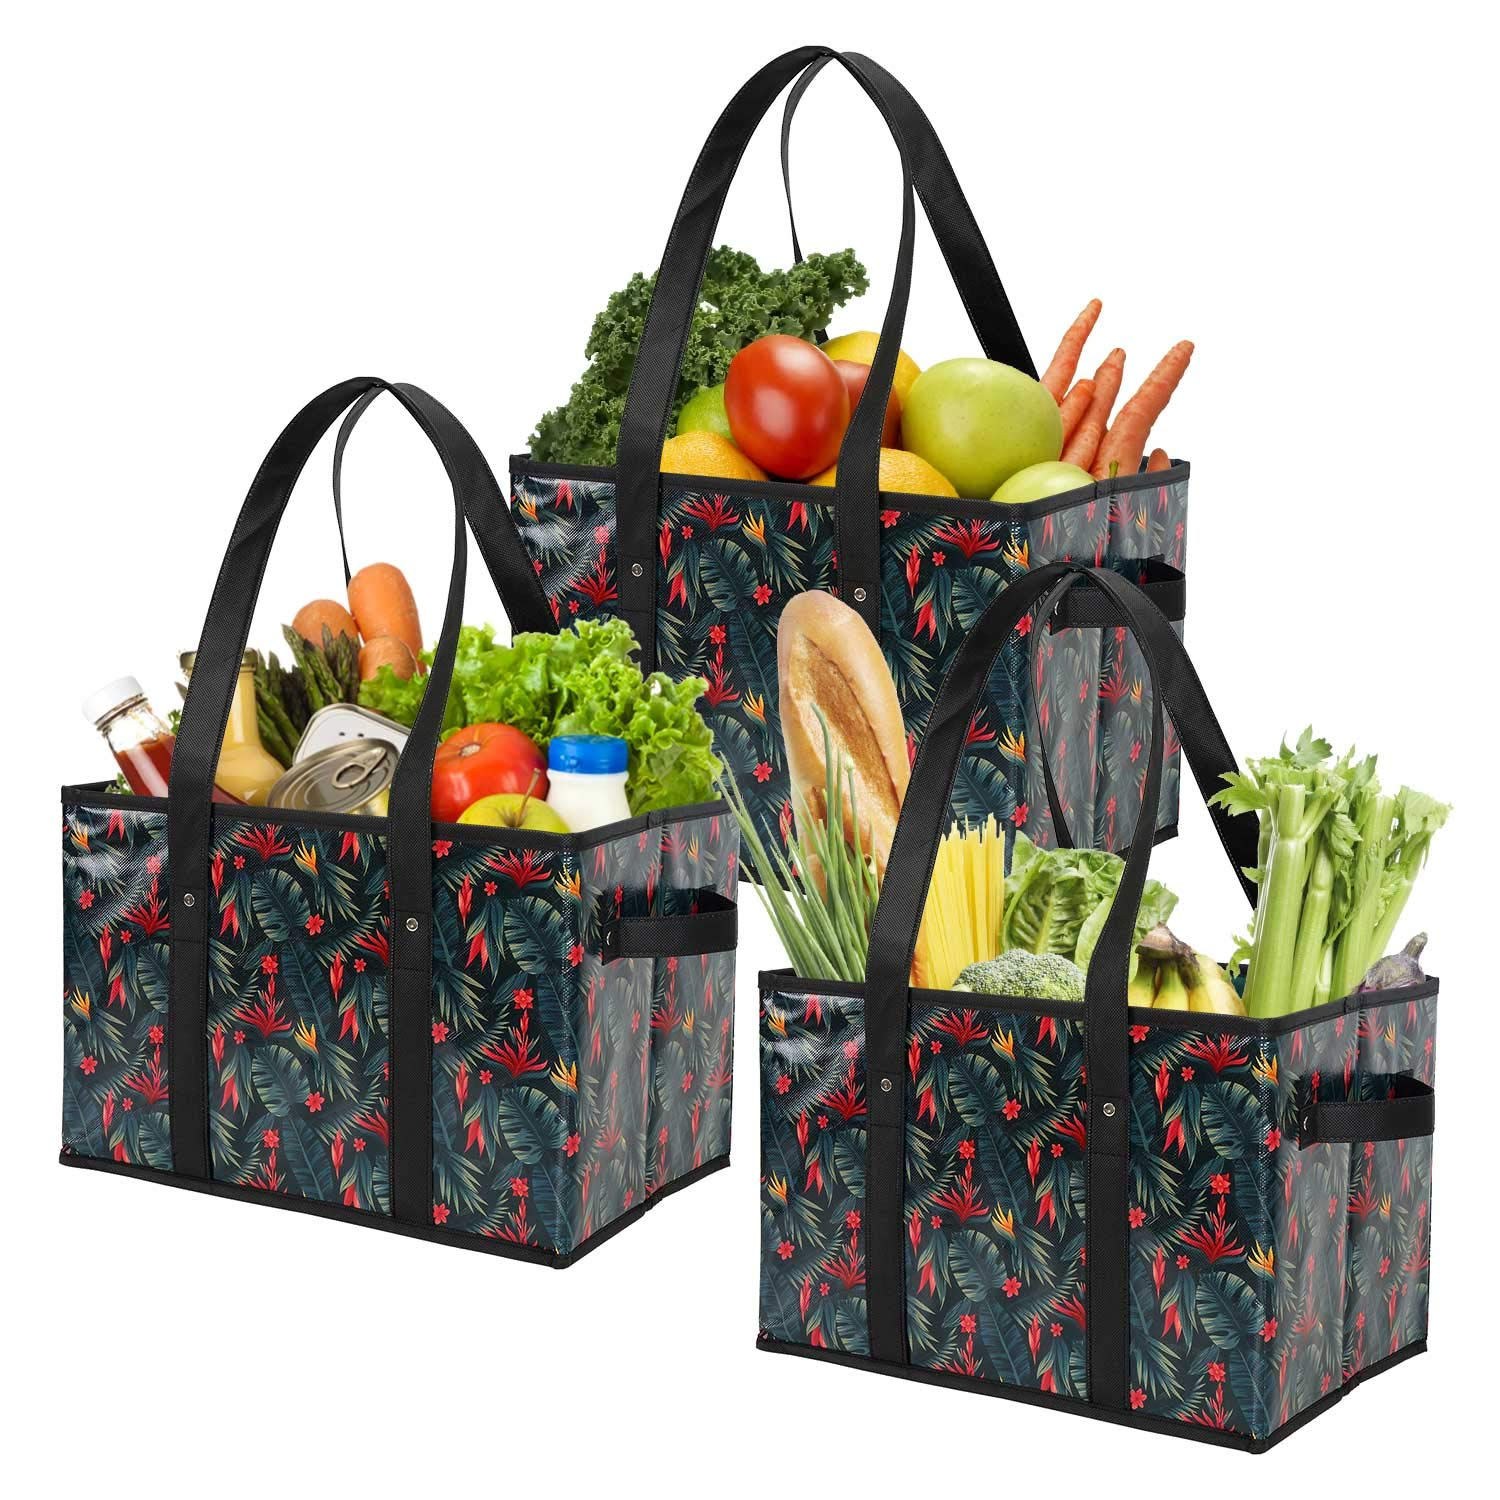 Foraineam Reusable Shopping Collapsible Reinforced